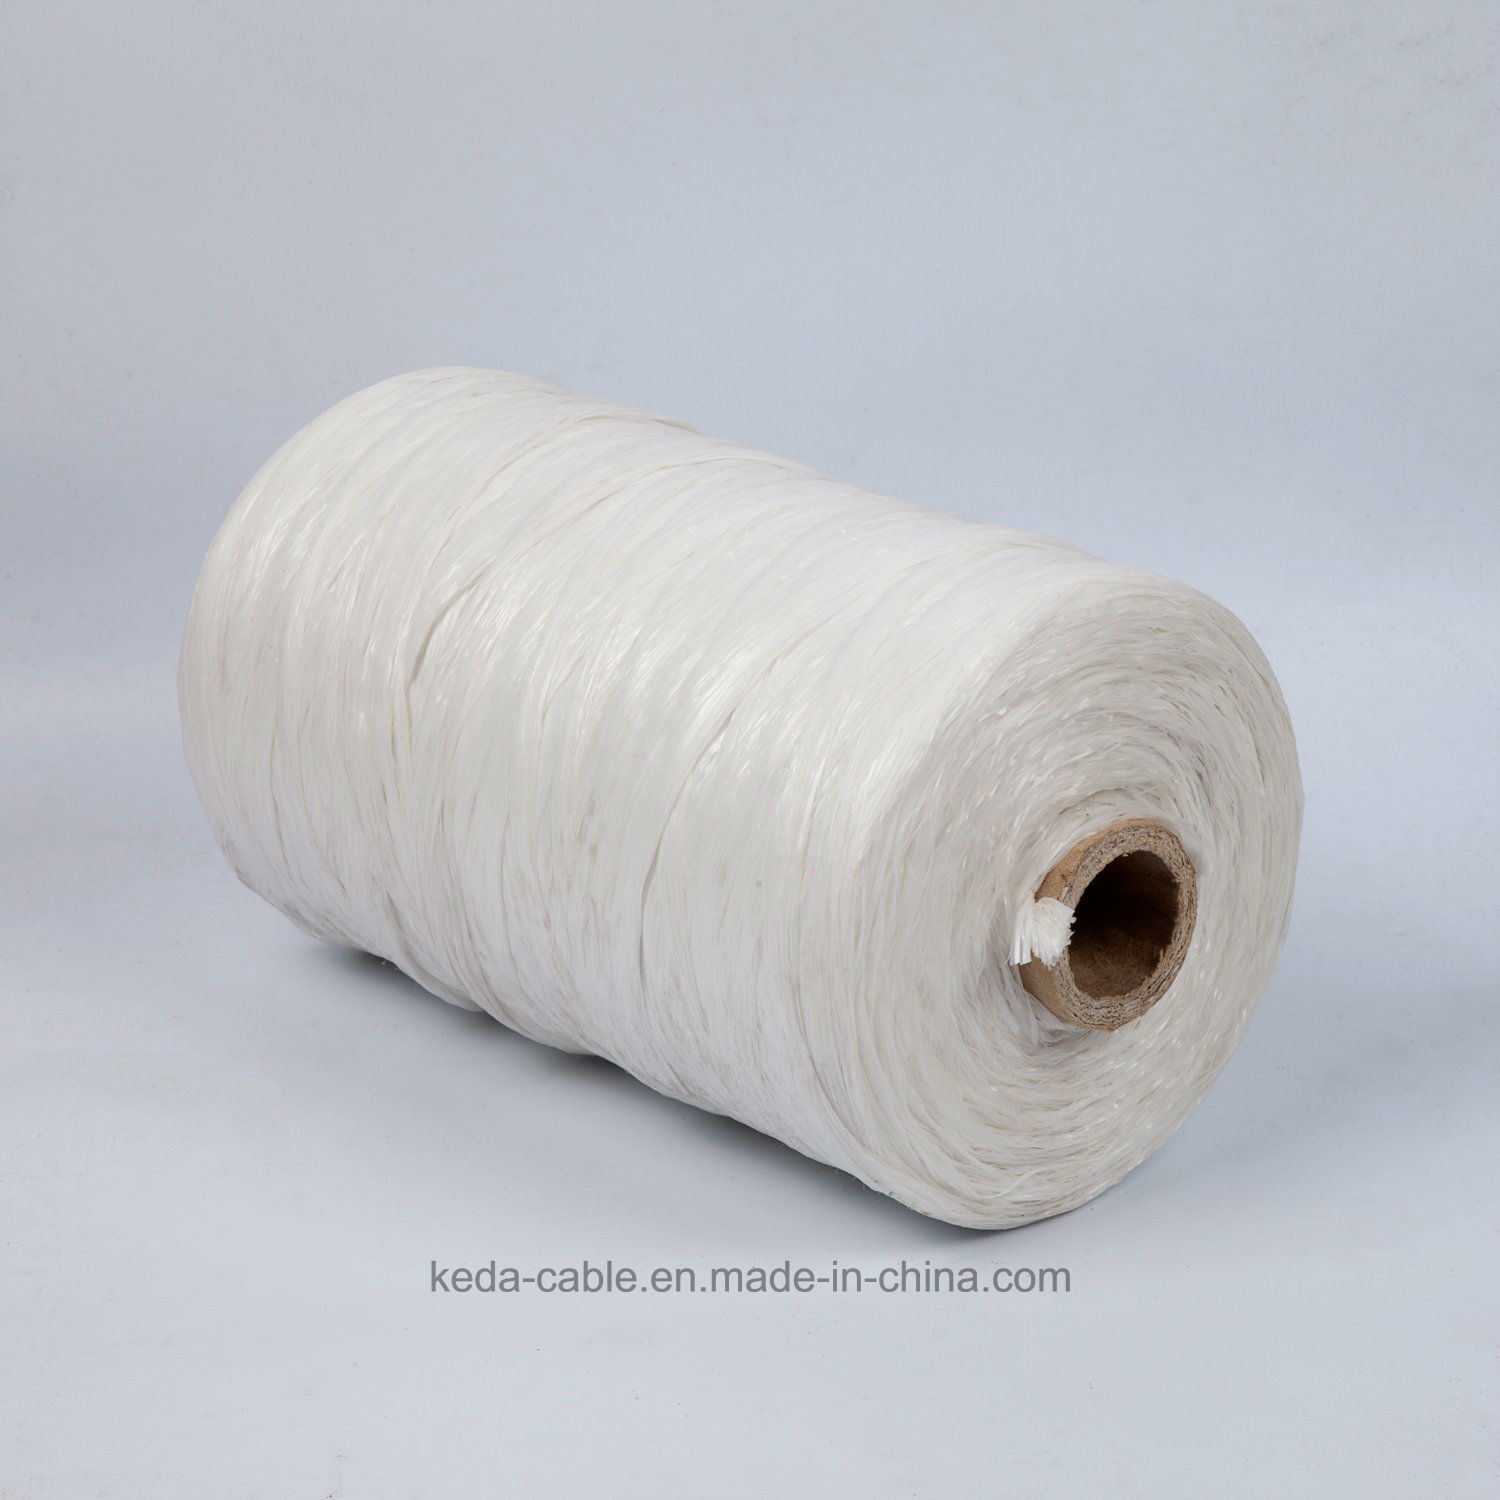 PP Retardant Filling Rope for Cable (12)